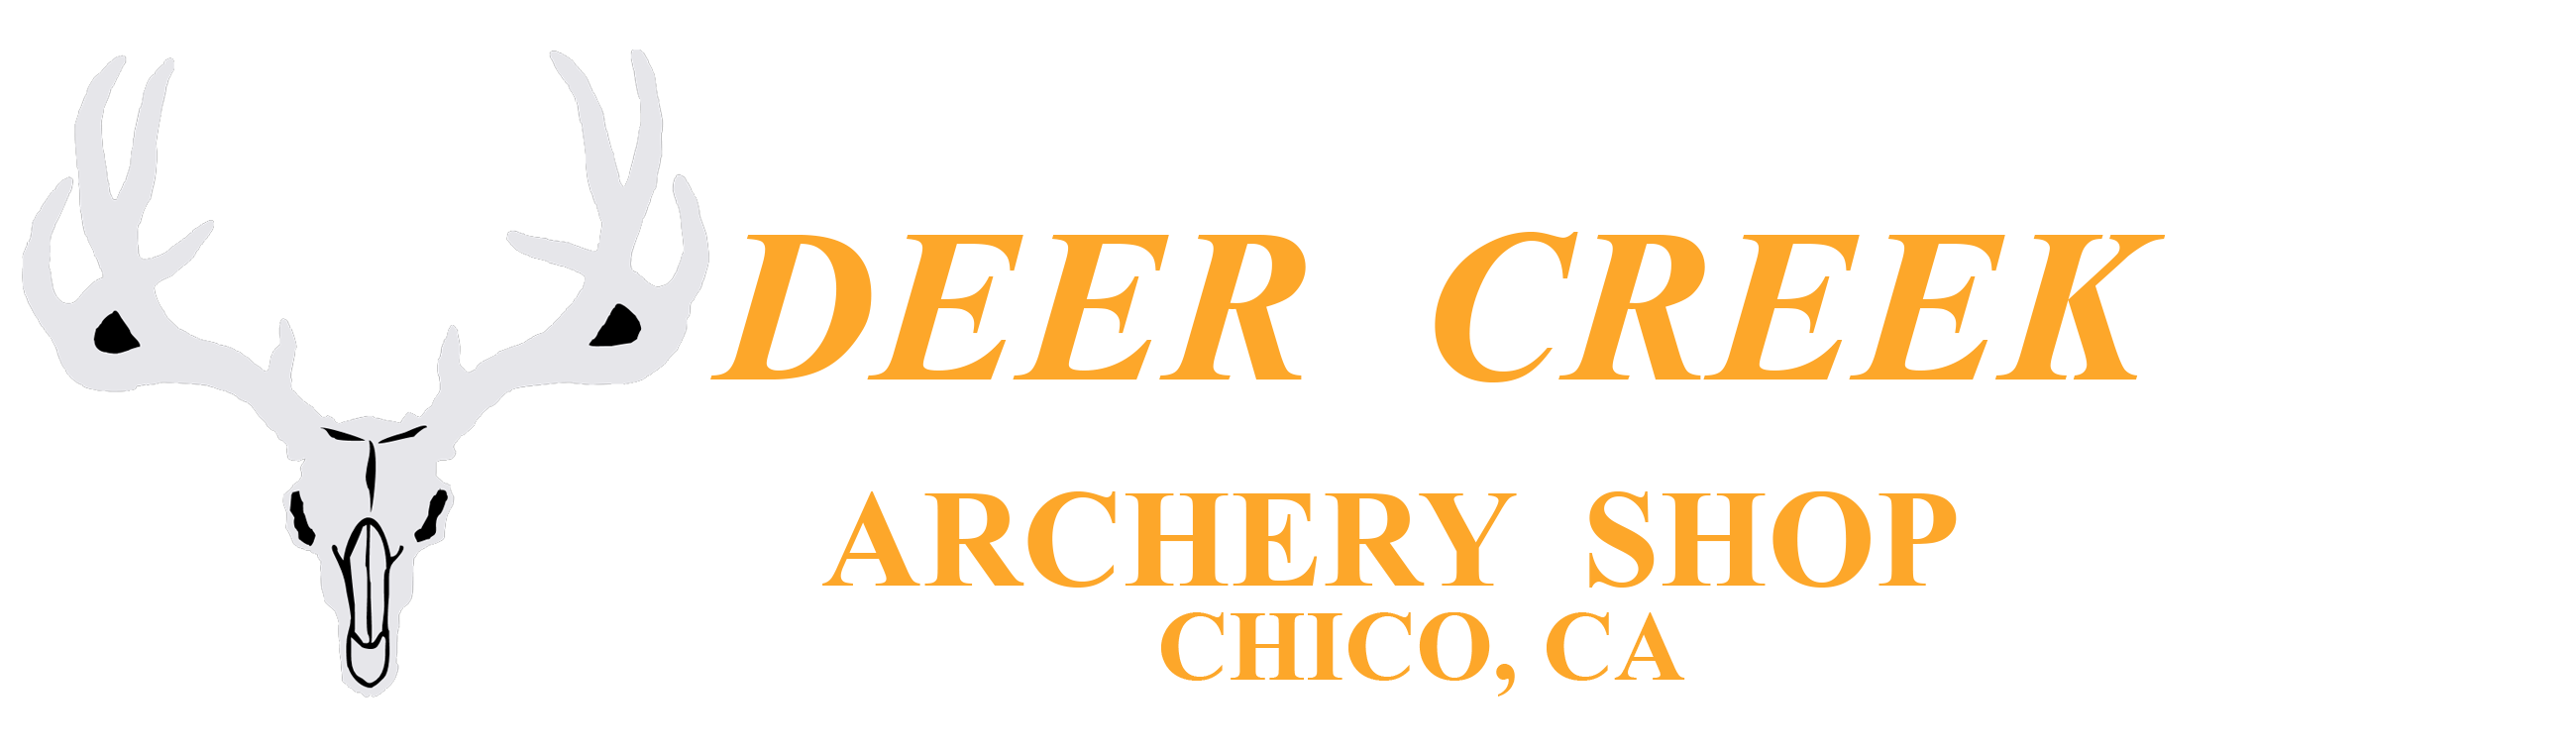 Deer Creek Archery in Chico California (530) 894-3840